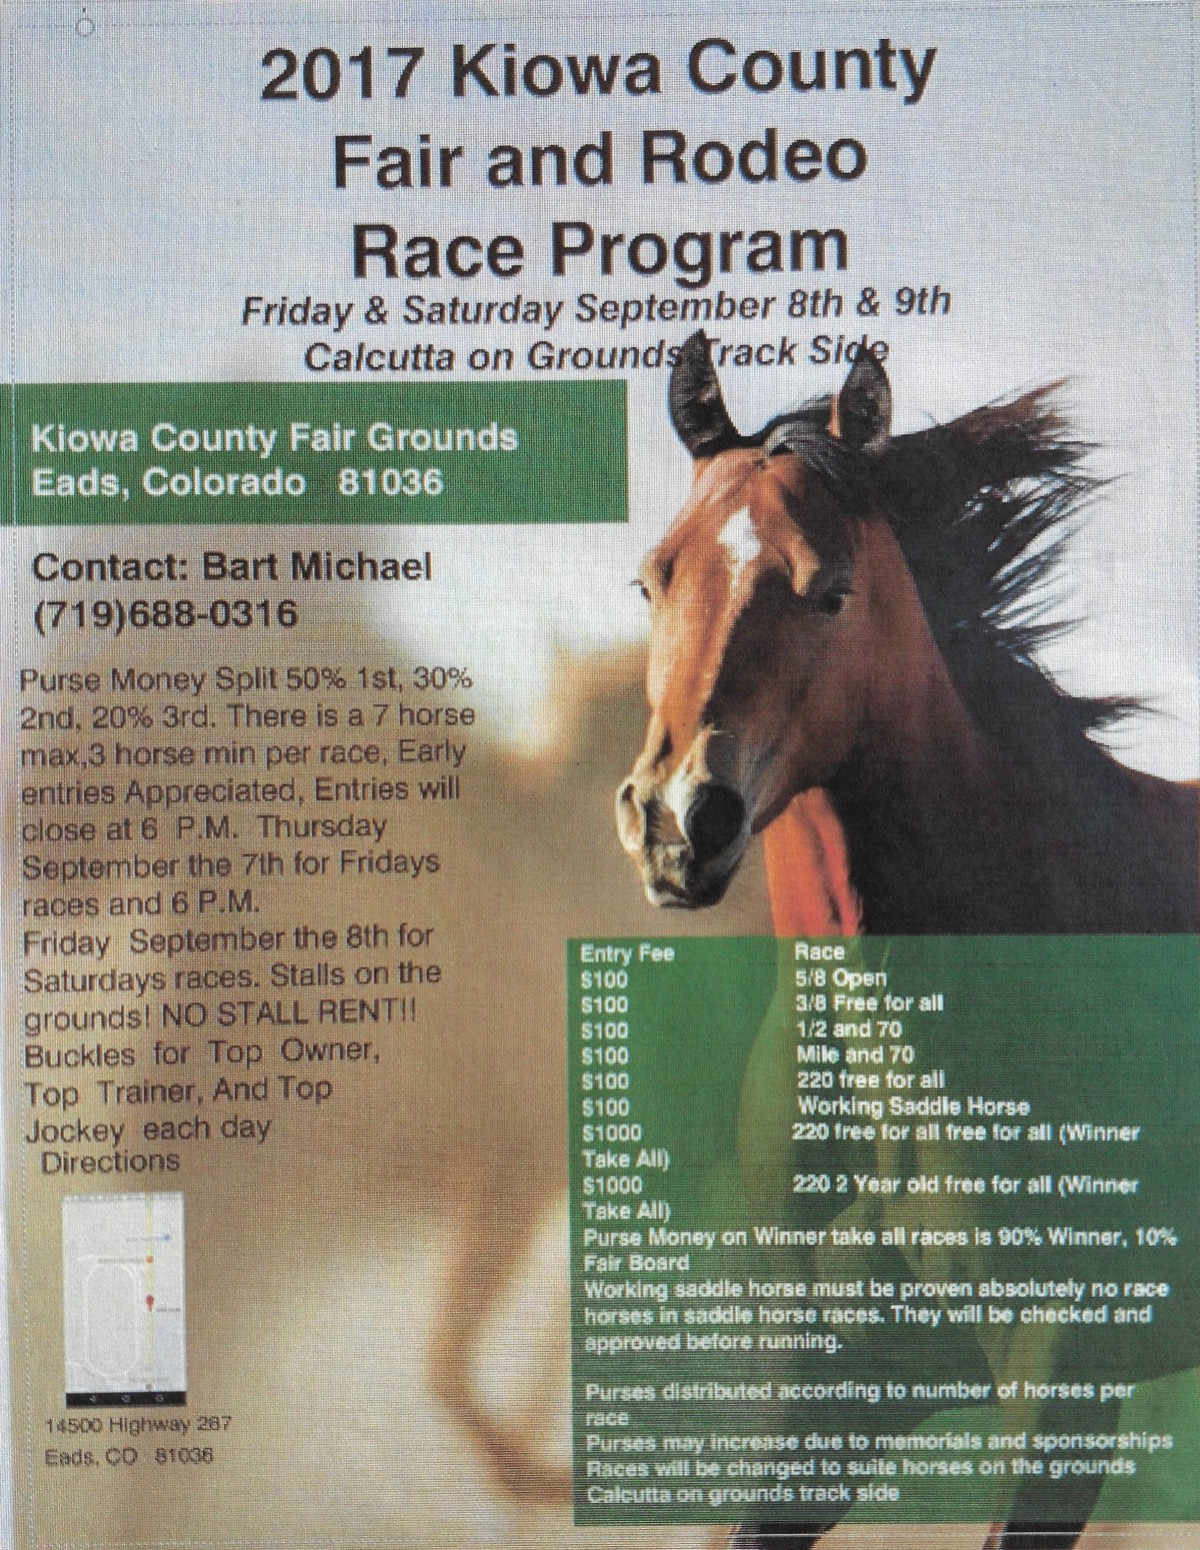 ADV - Horse Racing at the 2017 Kiowa County Fair